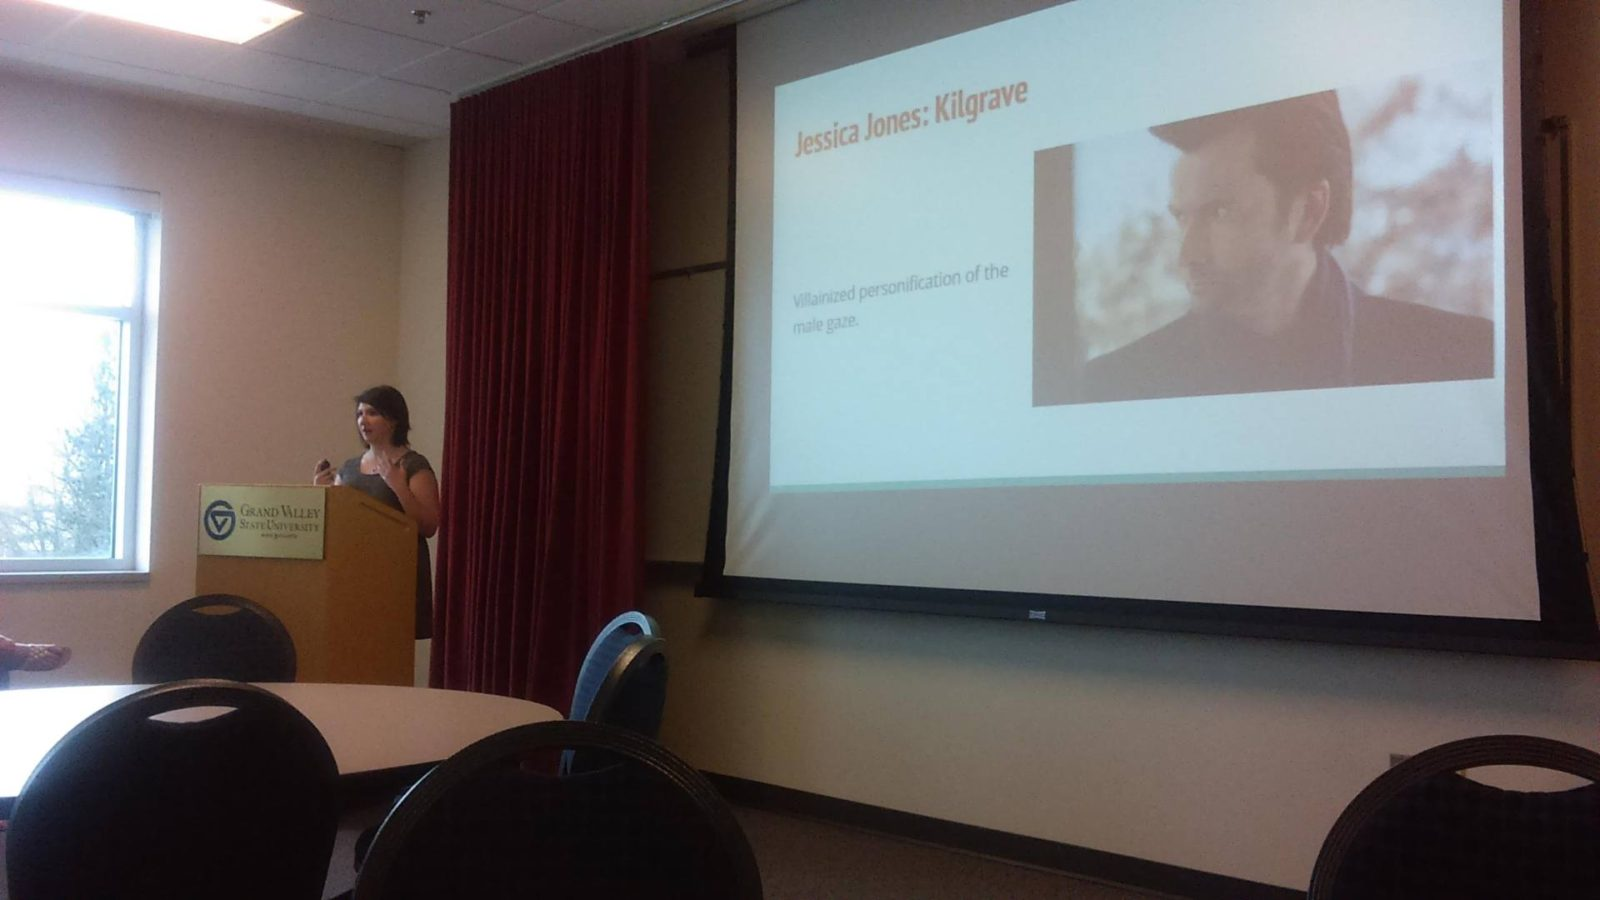 katsyxo gvsu capstone presentation male gaze jessica jones david tennant